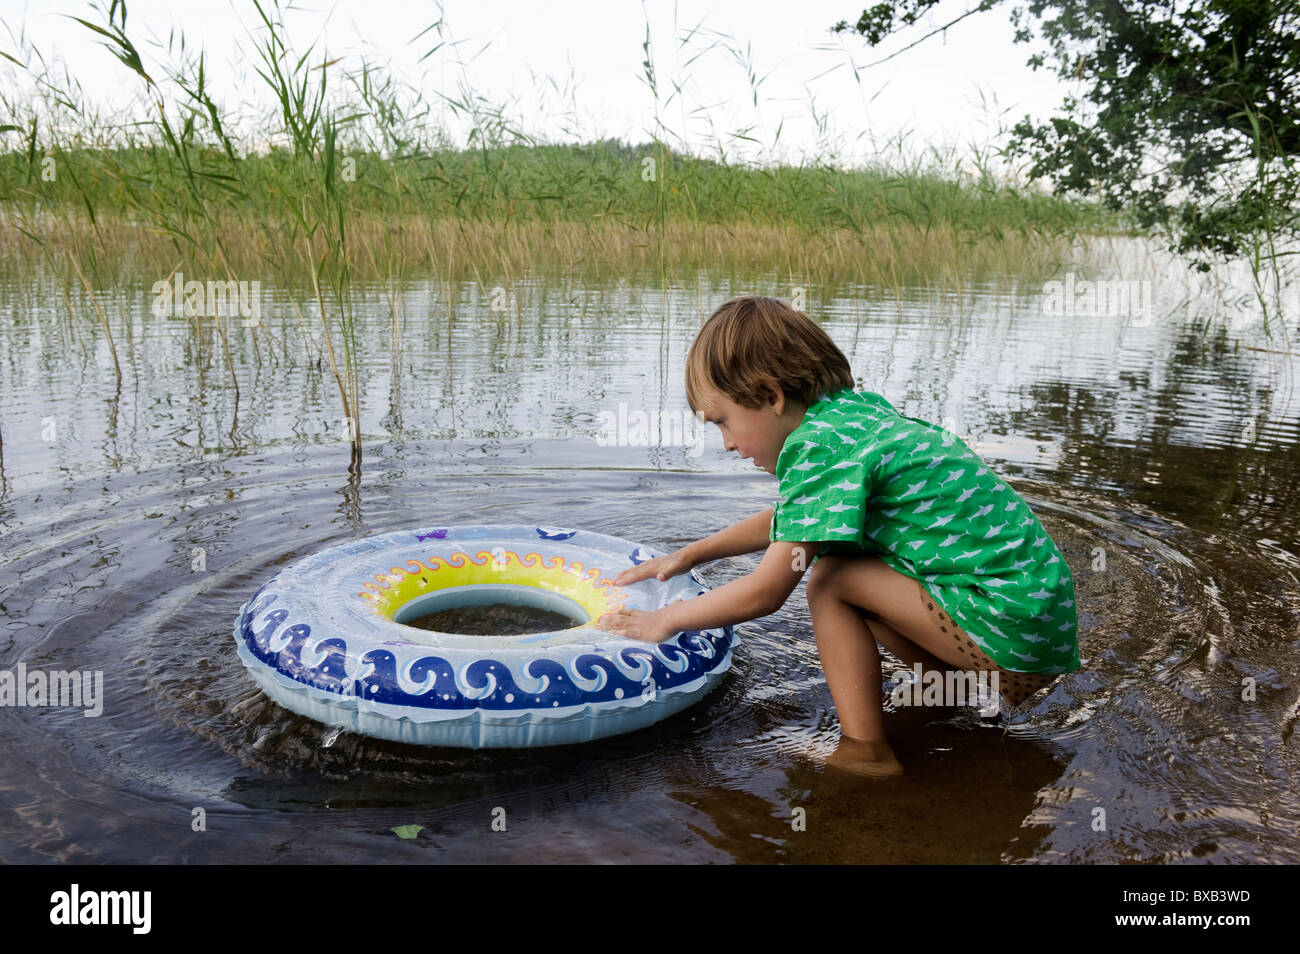 Boy playing with inner tube at edge of lake - Stock Image